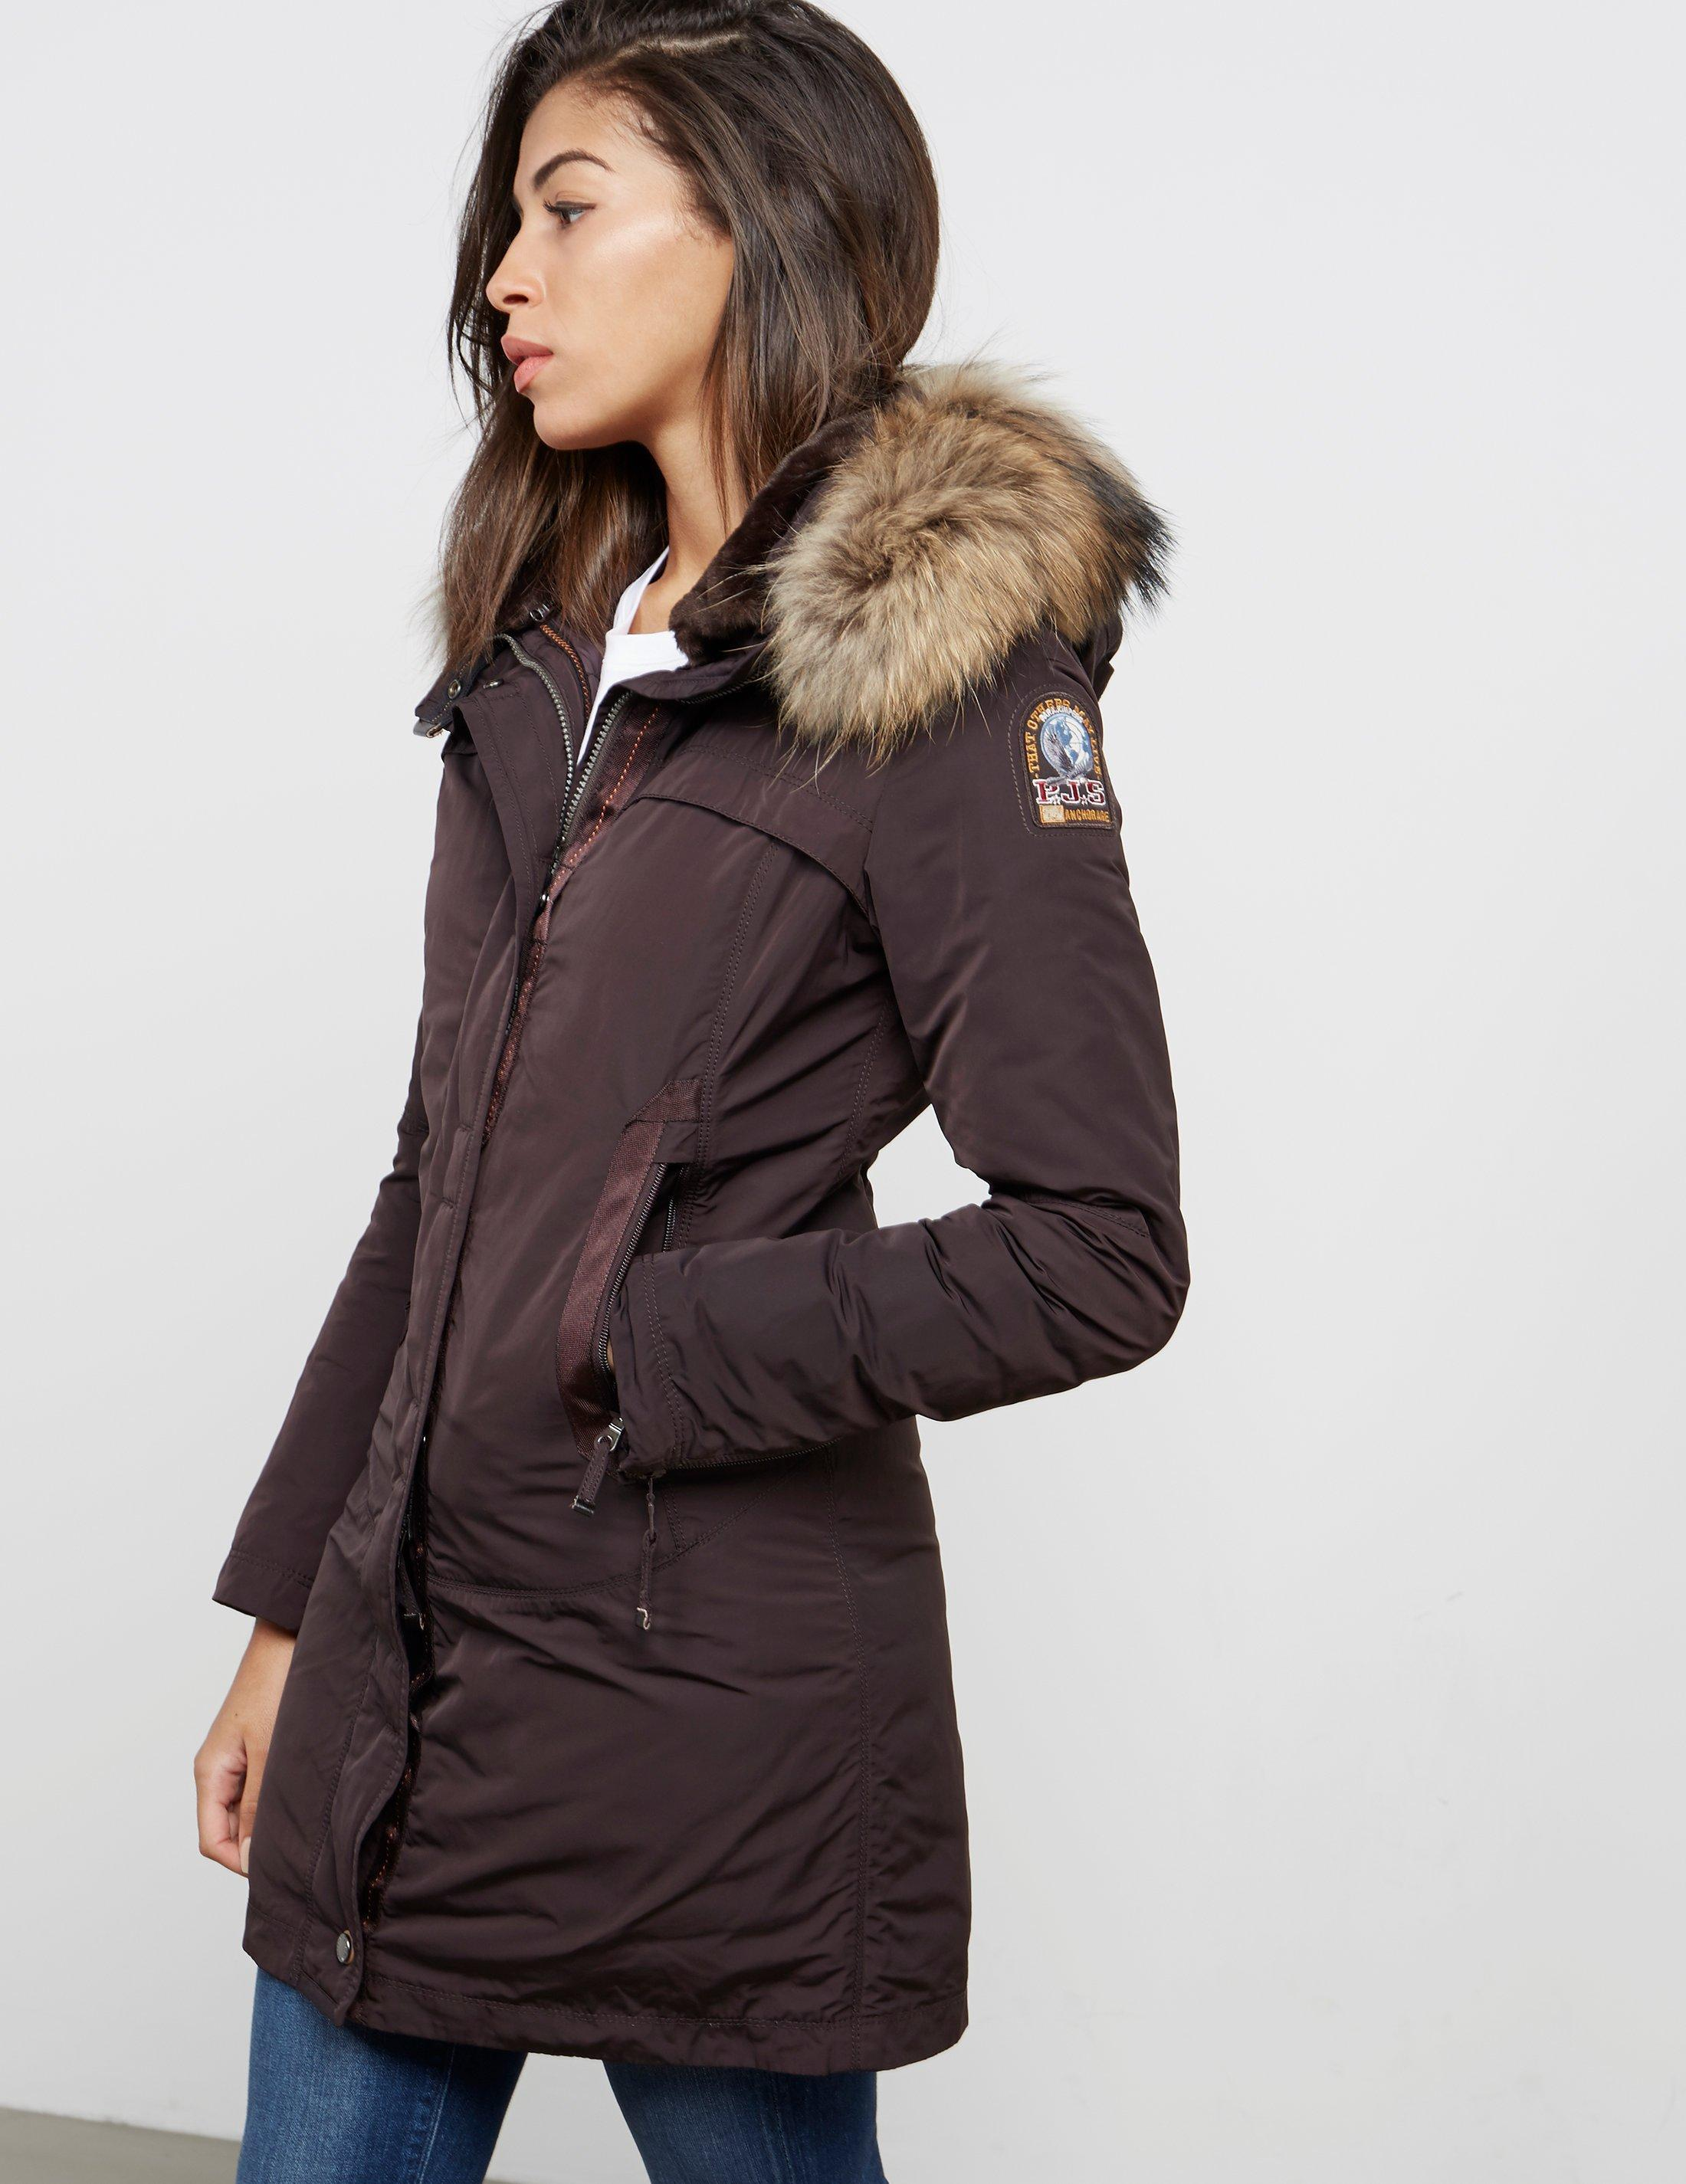 Parajumpers. Women's Black Selma Parka Jacket